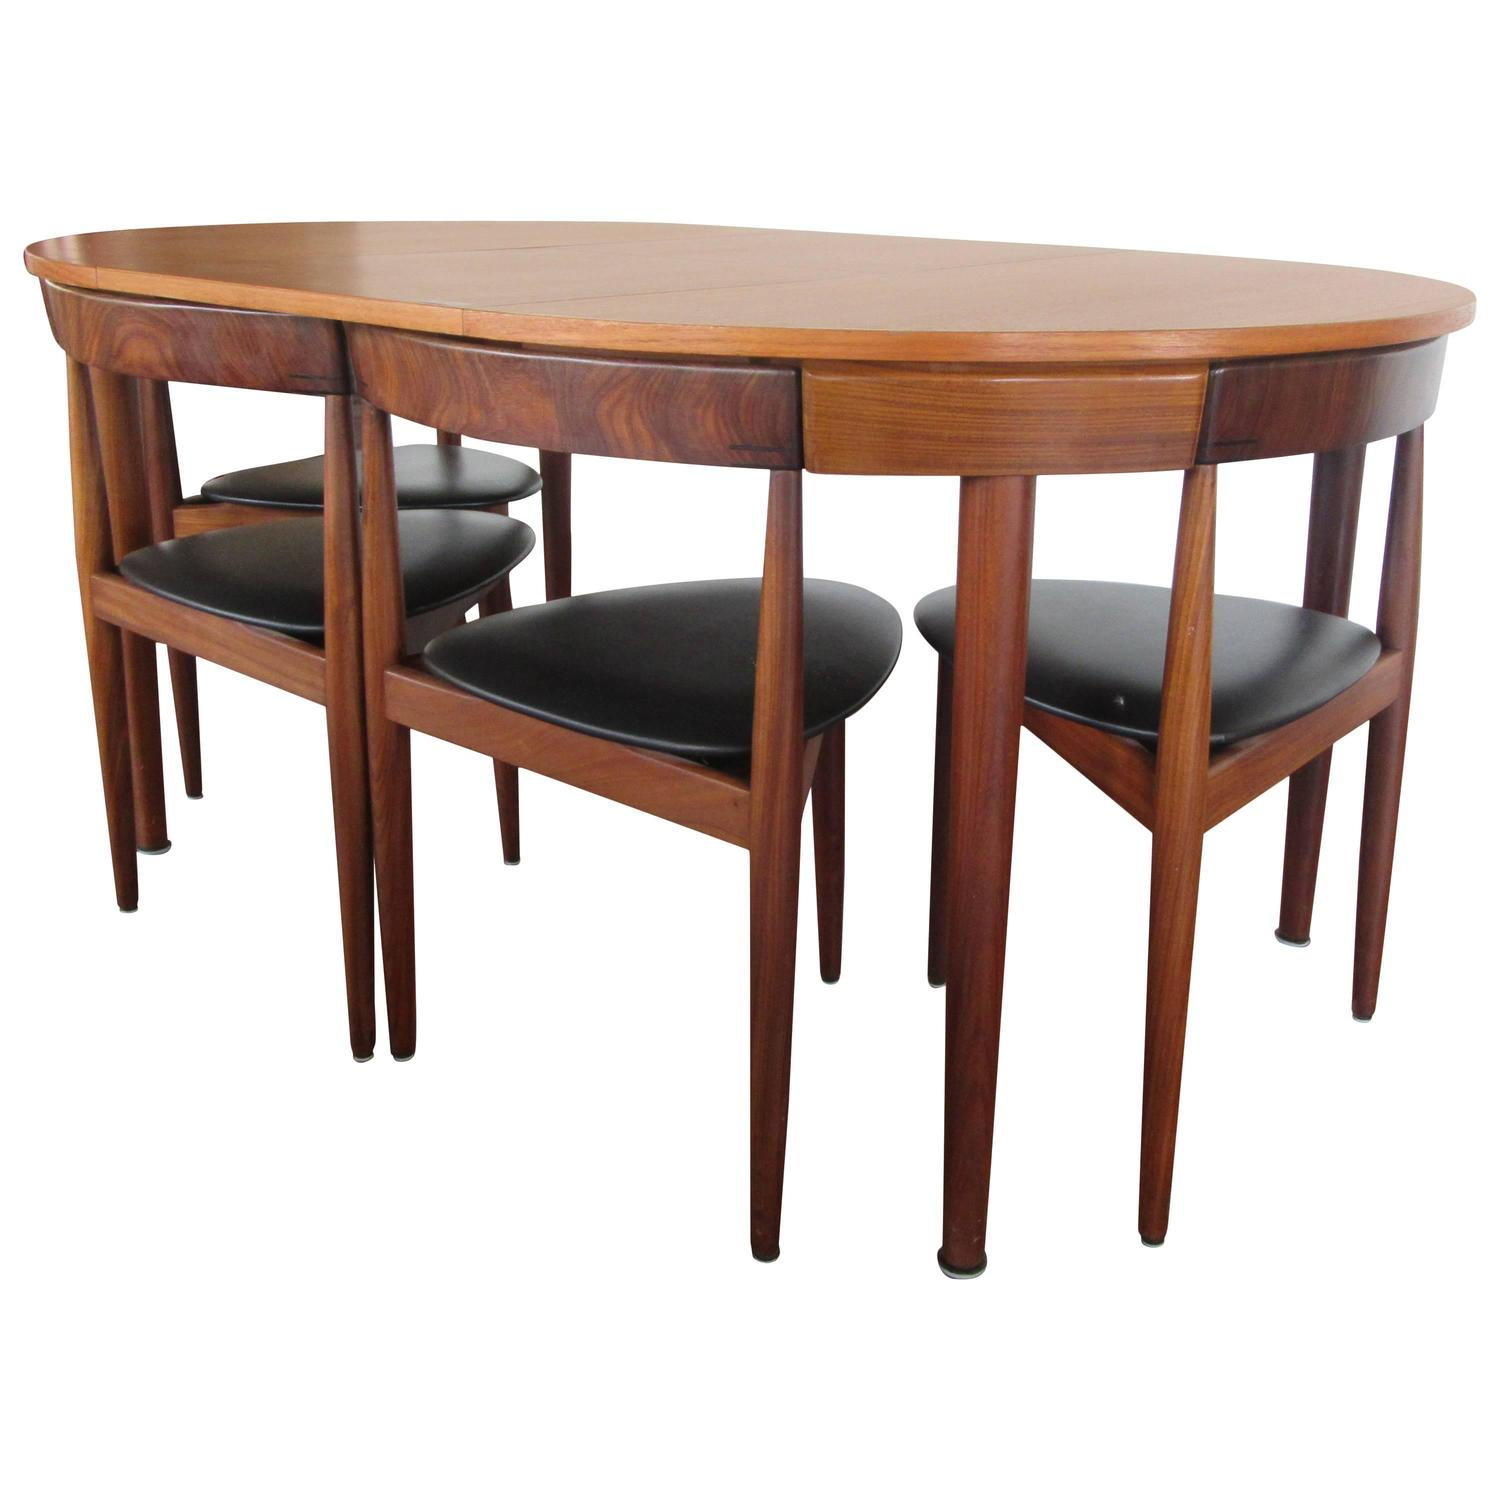 Rare hans olsen teak table with leaf and six chairs that for Dining room table with 6 chairs